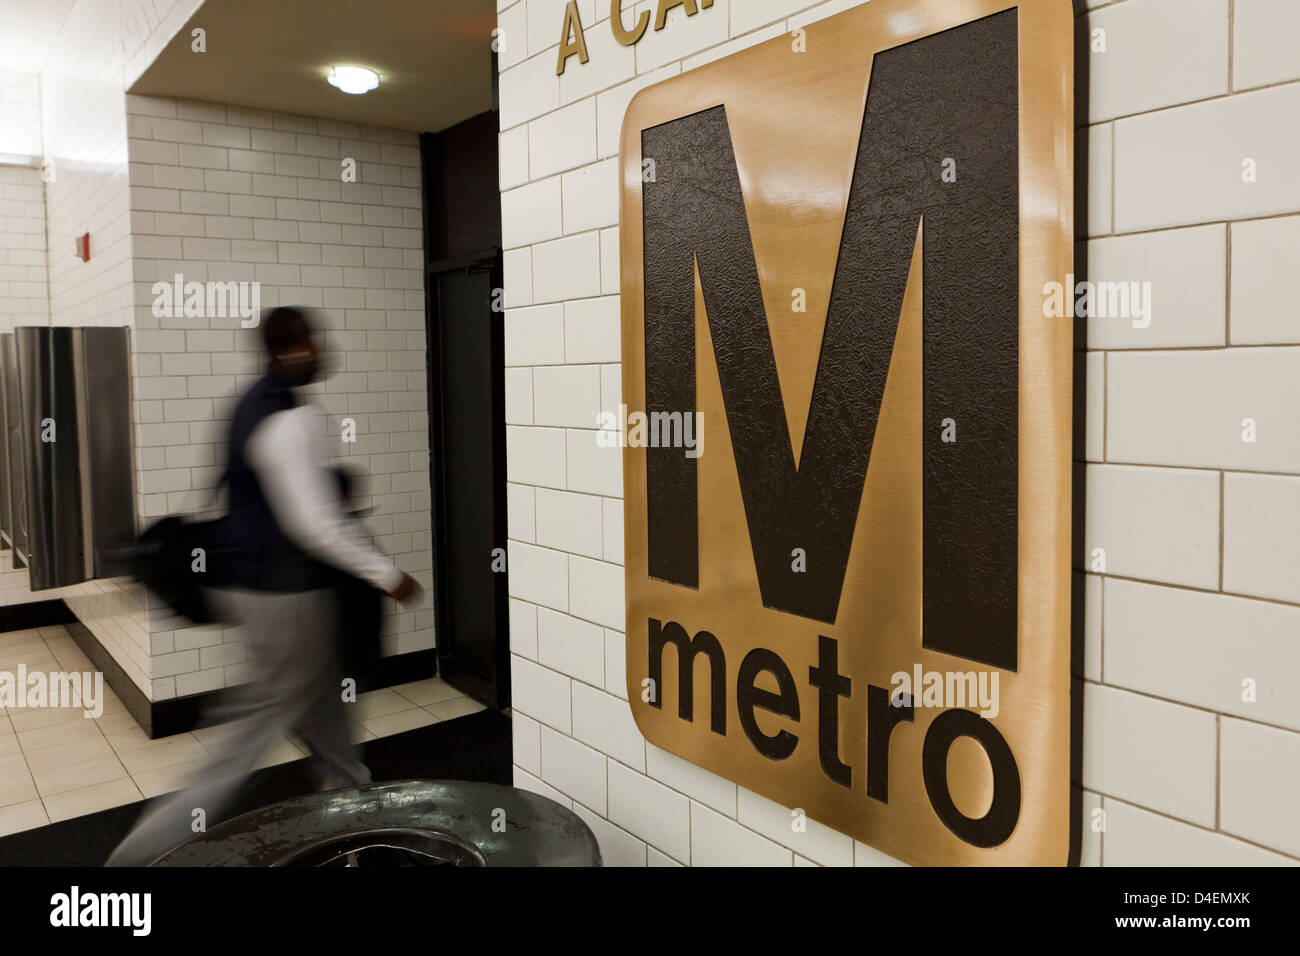 Metro sign - Stock Image